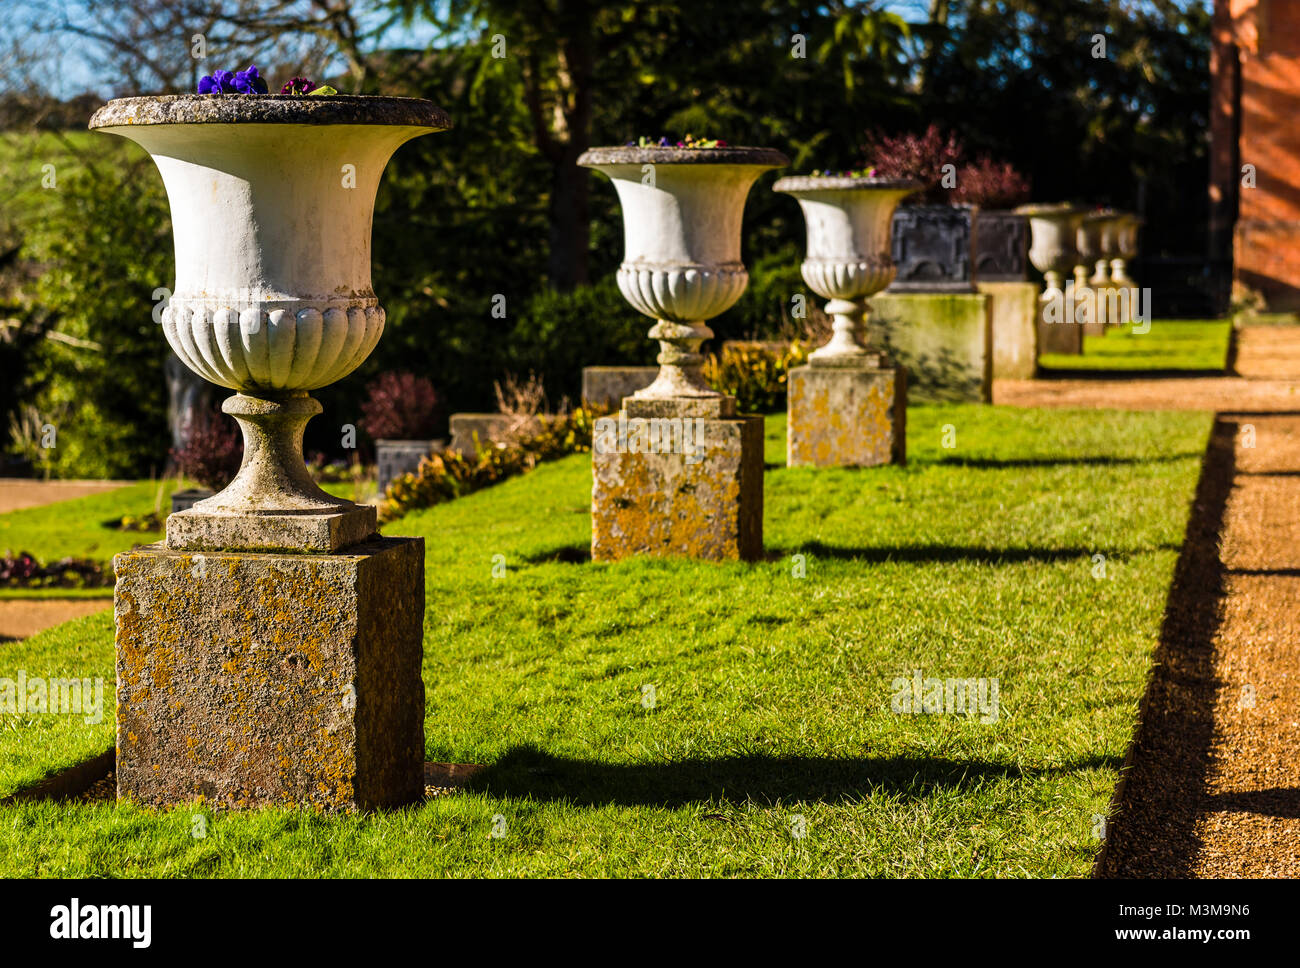 Stone urns in a line at Hughenden, Buckinghamshire, UK - Stock Image